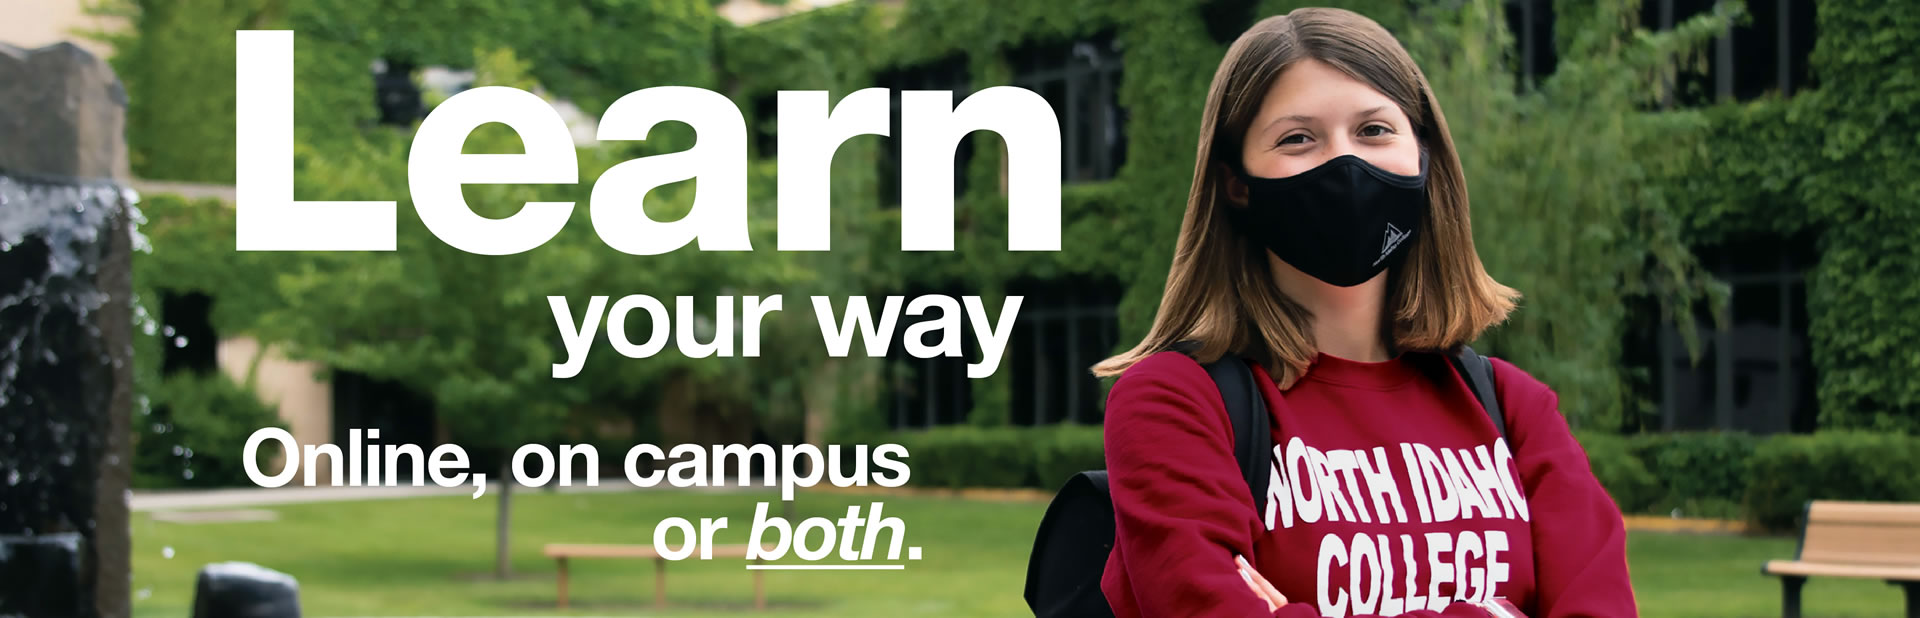 female student wearing a mask and standing near Lee-Kildow fountain - Learn your way. Online, on campus or both.